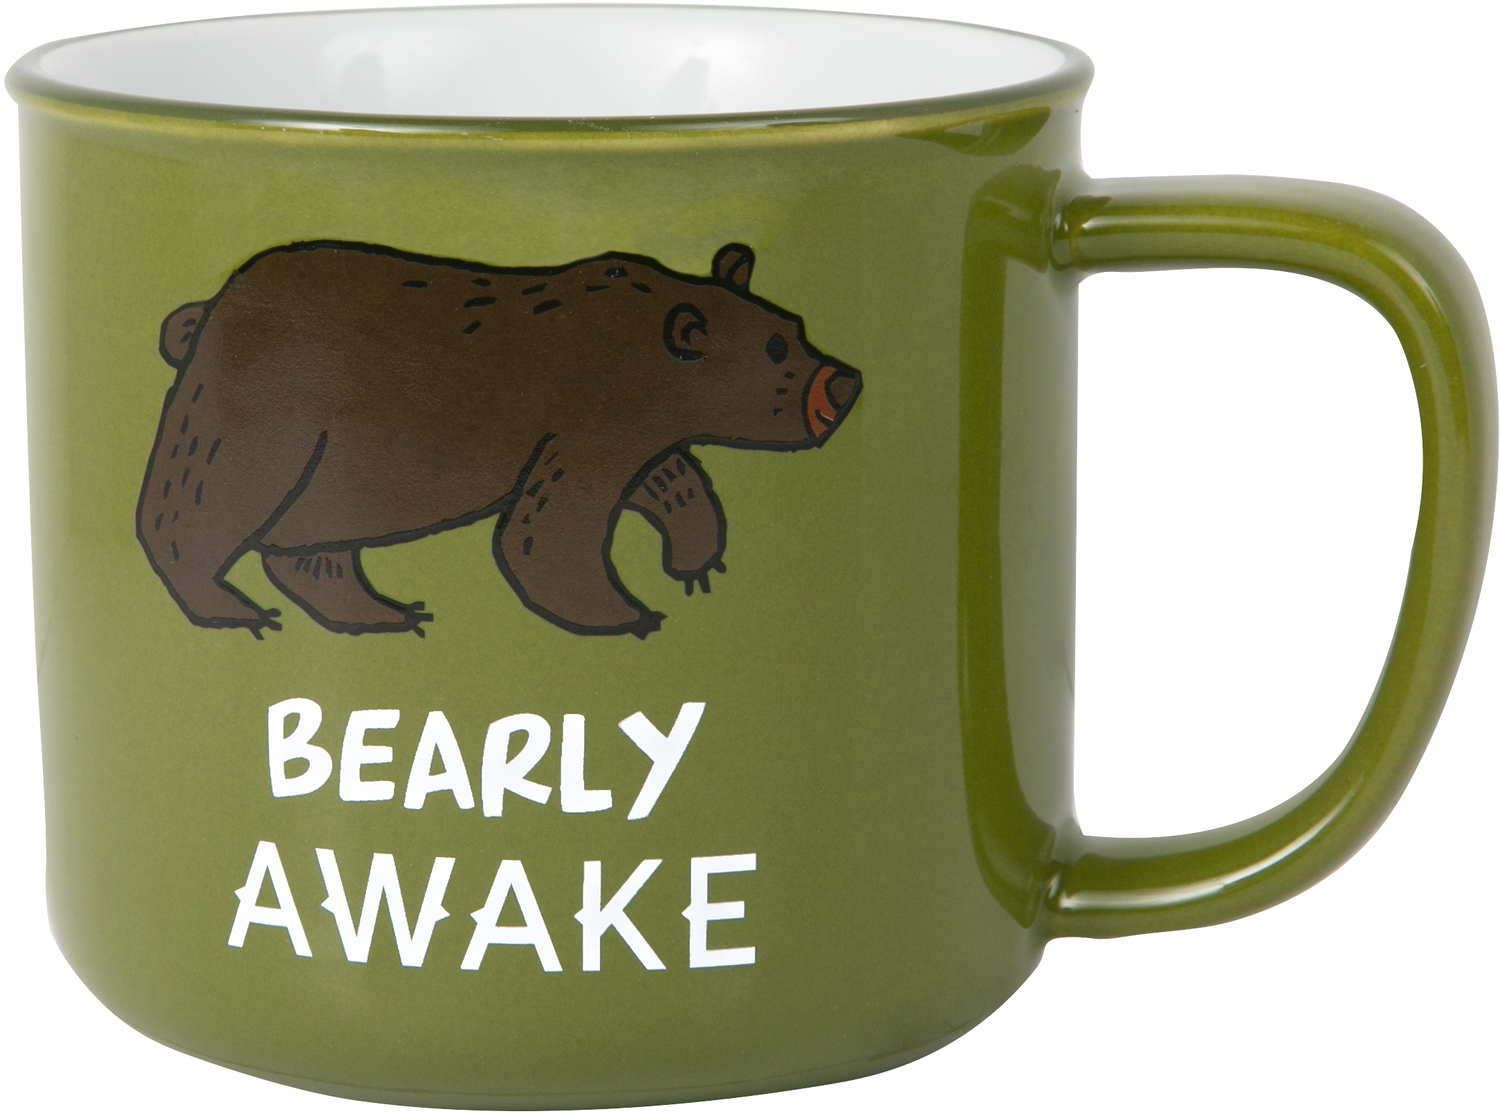 Bearly Awake by We People - Bearly Awake - 17 oz Mug